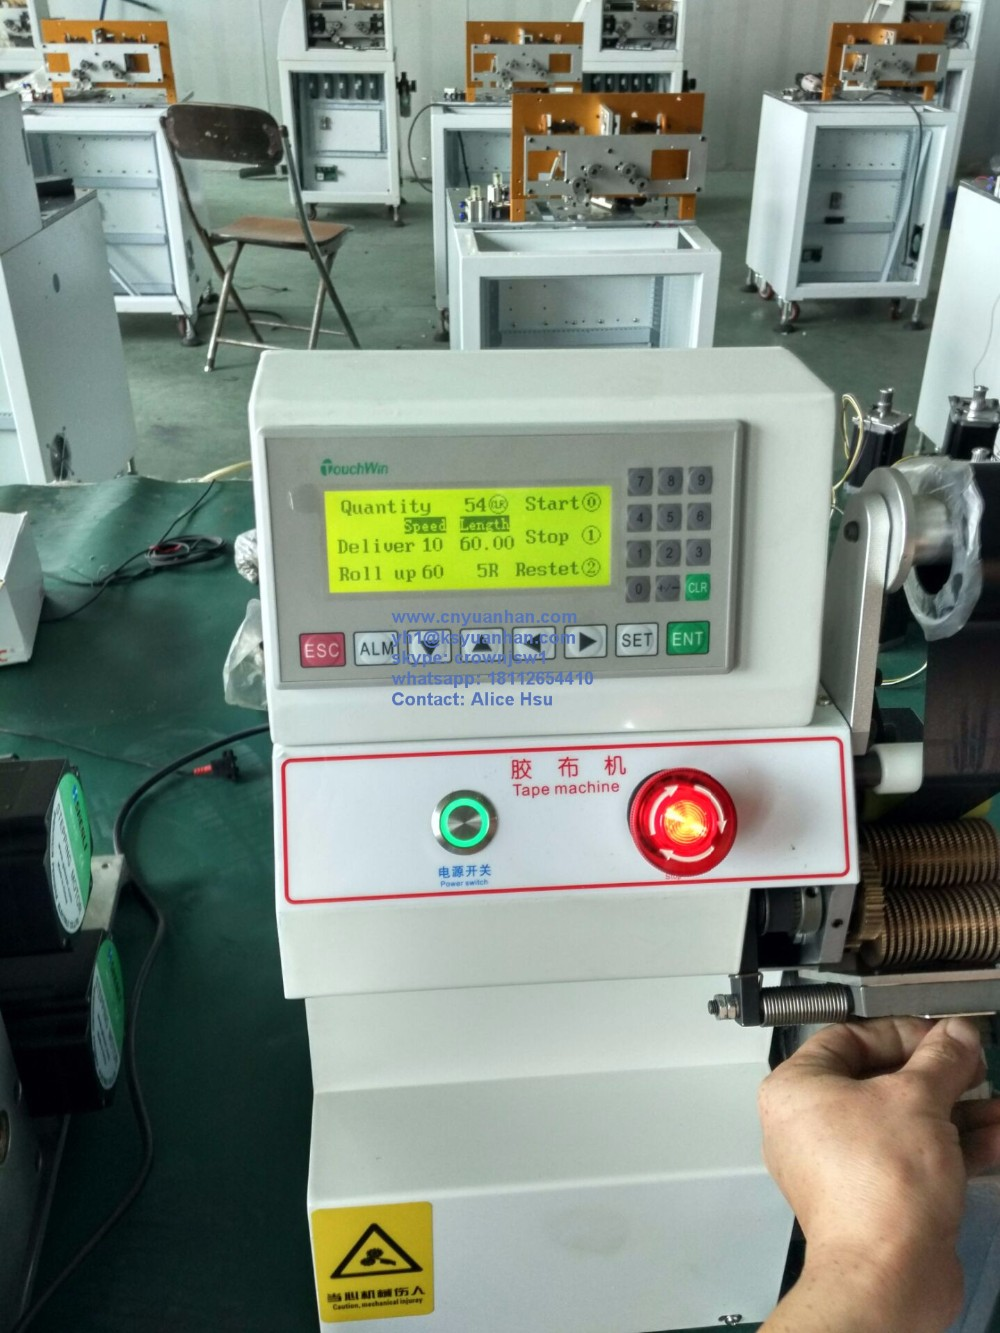 HTB1rWbsRXXXXXa5XpXXq6xXFXXXH bundling isolating marking wire harness taping machine buy wire wire harness taping machines at aneh.co